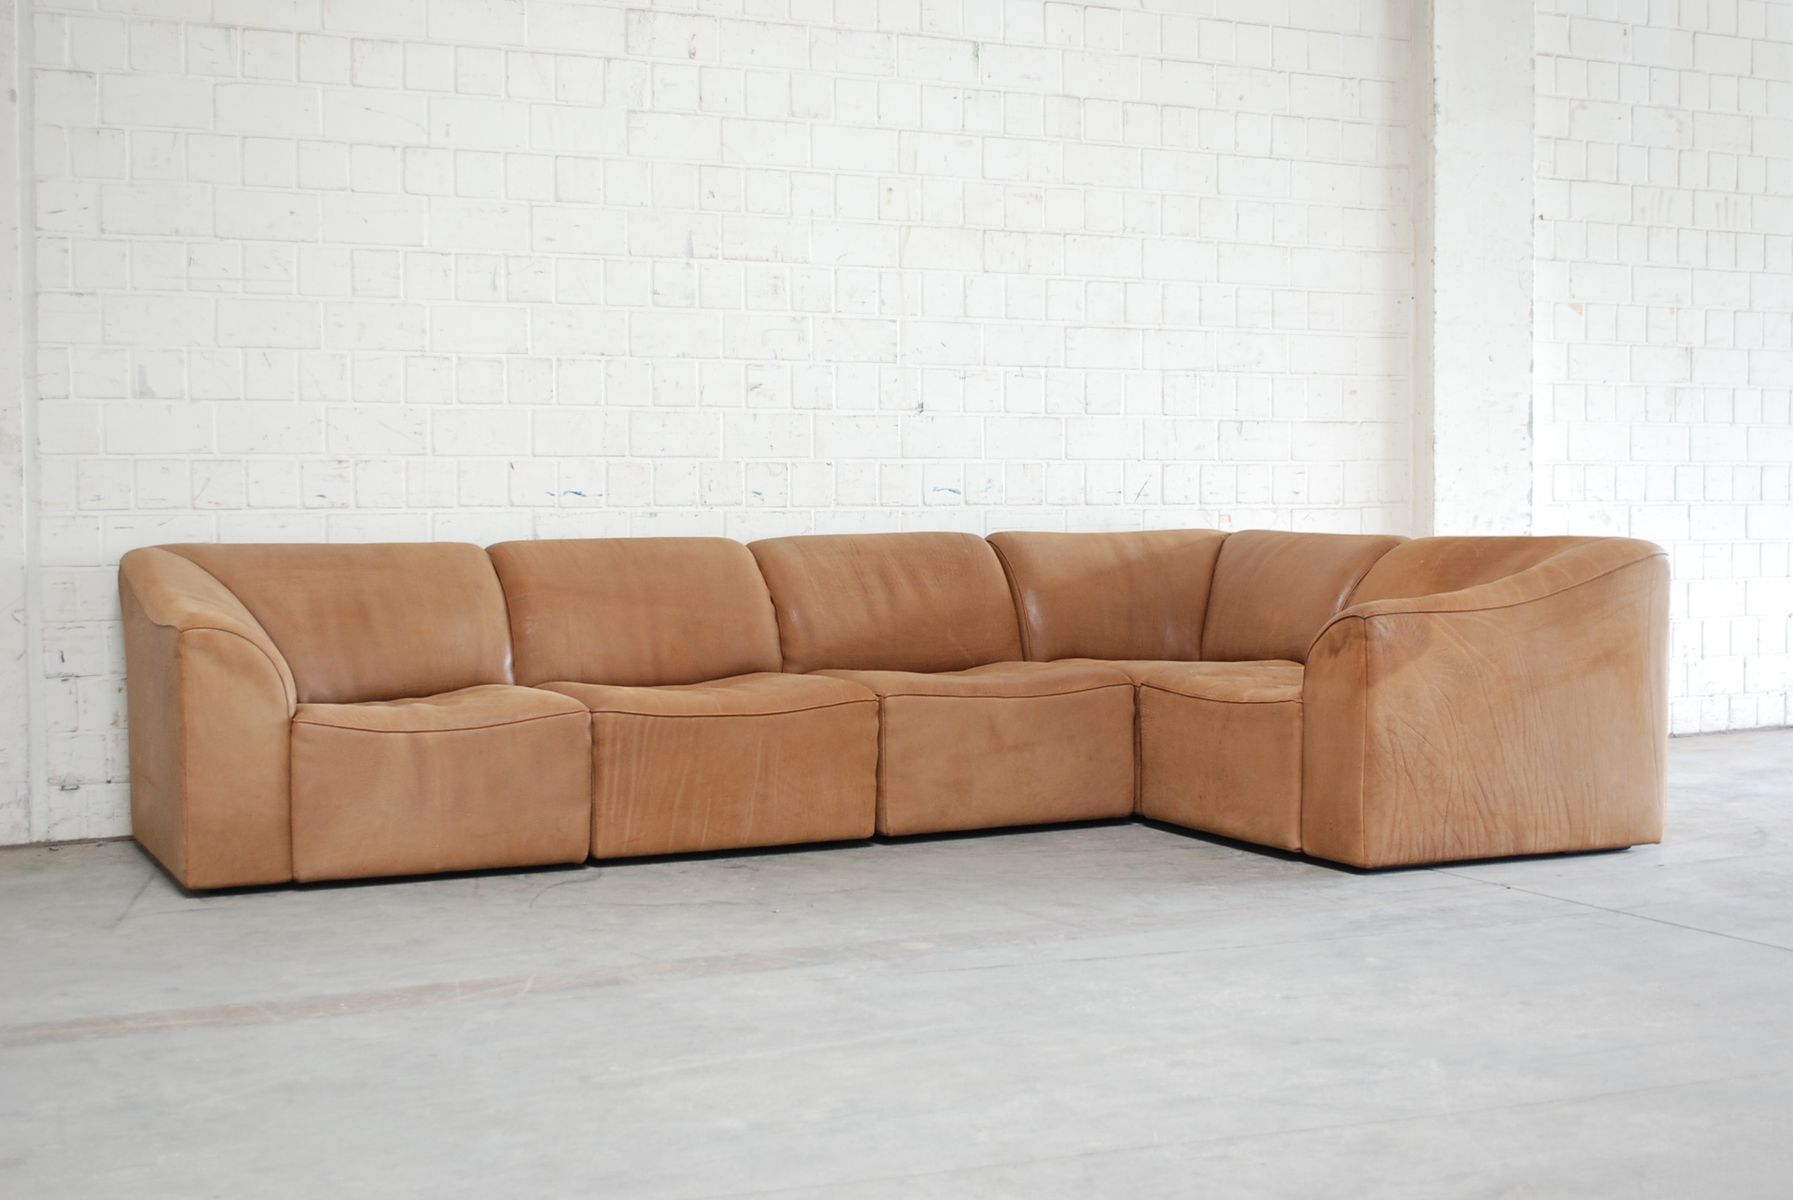 Modular DS 10 Leather Sofa from de Sede for sale at Pamono